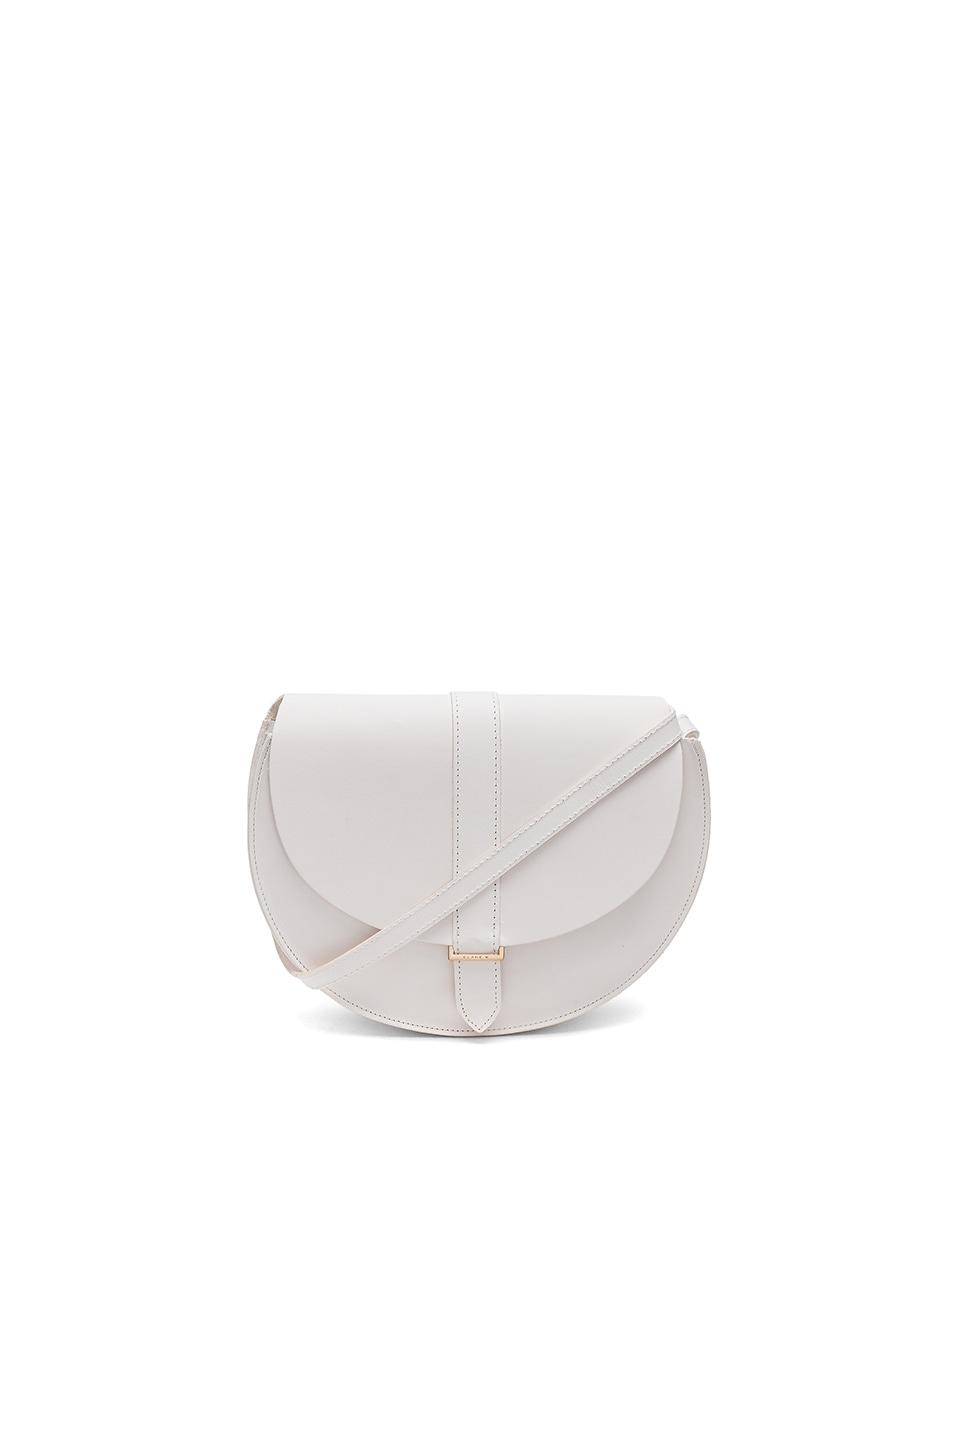 Clare V. Luce Bag in White